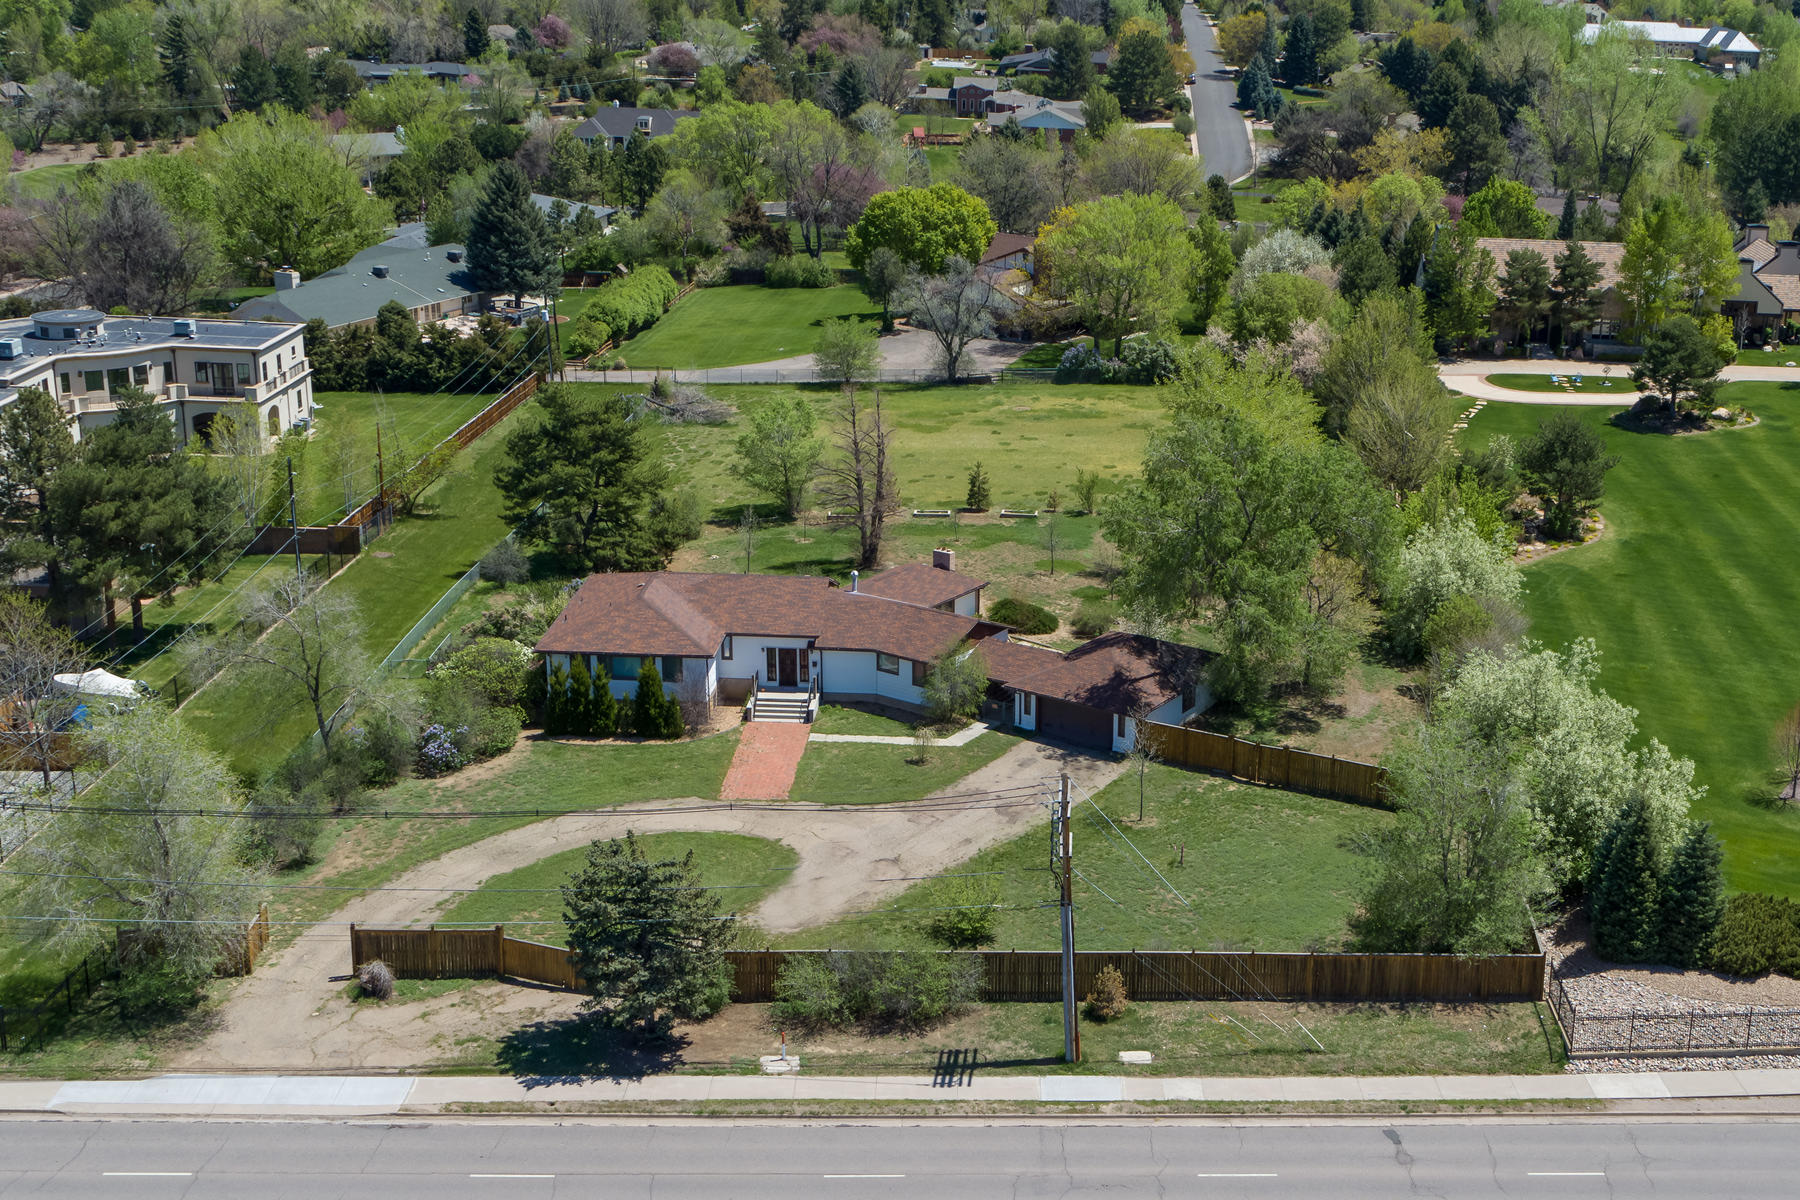 Single Family Home for Active at Undeniably some of the most spectacular panoramic Rocky Mountain & sunset views! 4650 S University Blvd Englewood, Colorado 80113 United States